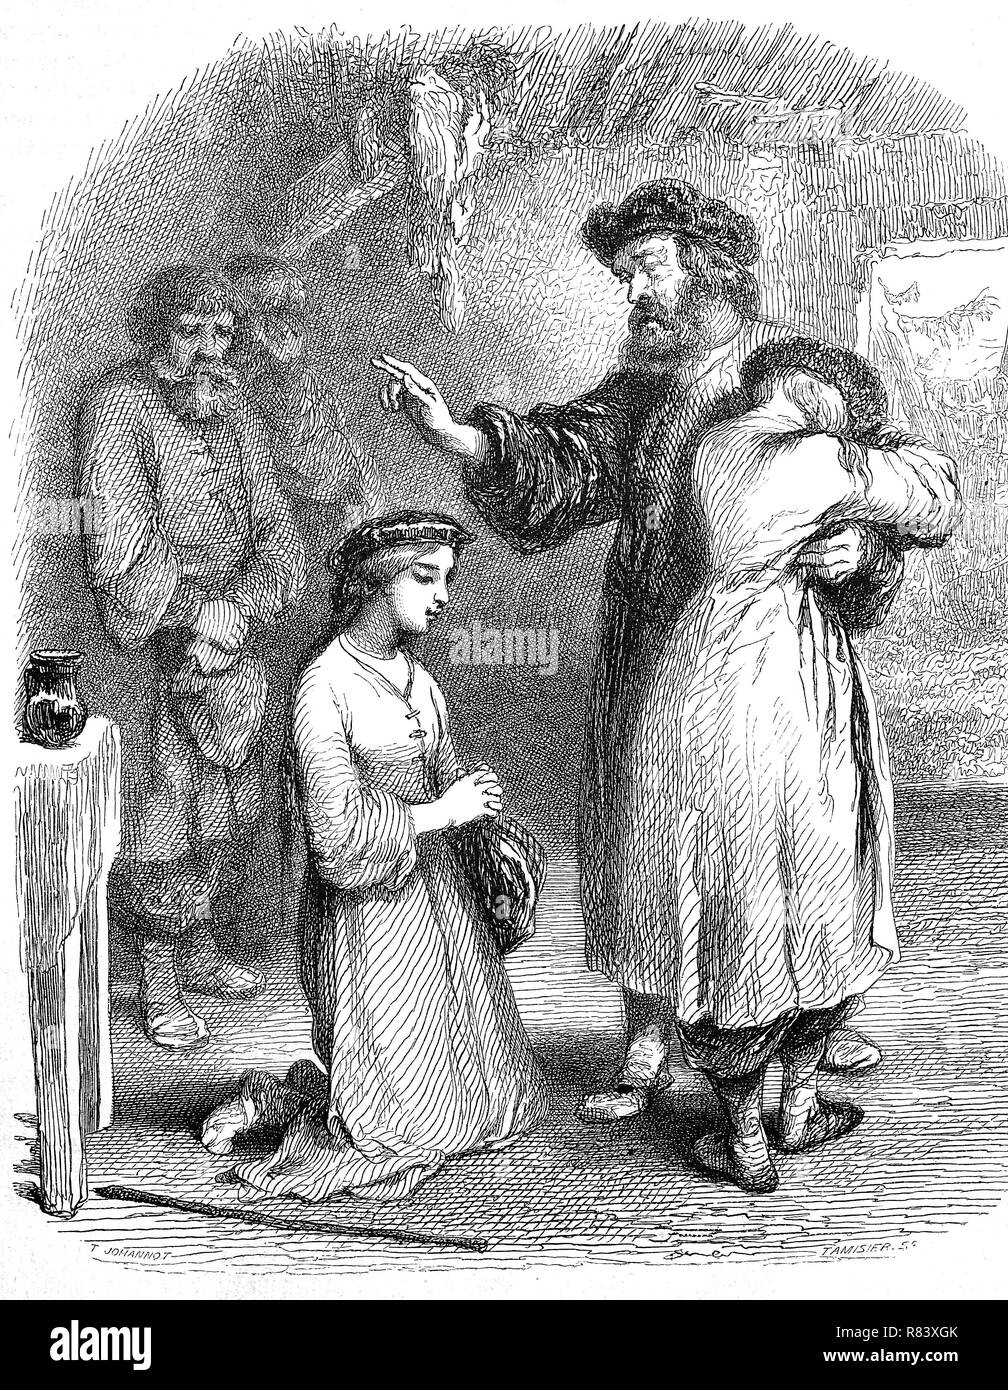 Digital improved reproduction, Pope in Siberia blesses and comfortes the family, Russia, Pope in Sibirien segnet und tröstet die Familie, Russland, from an original print from the year 1855 - Stock Image